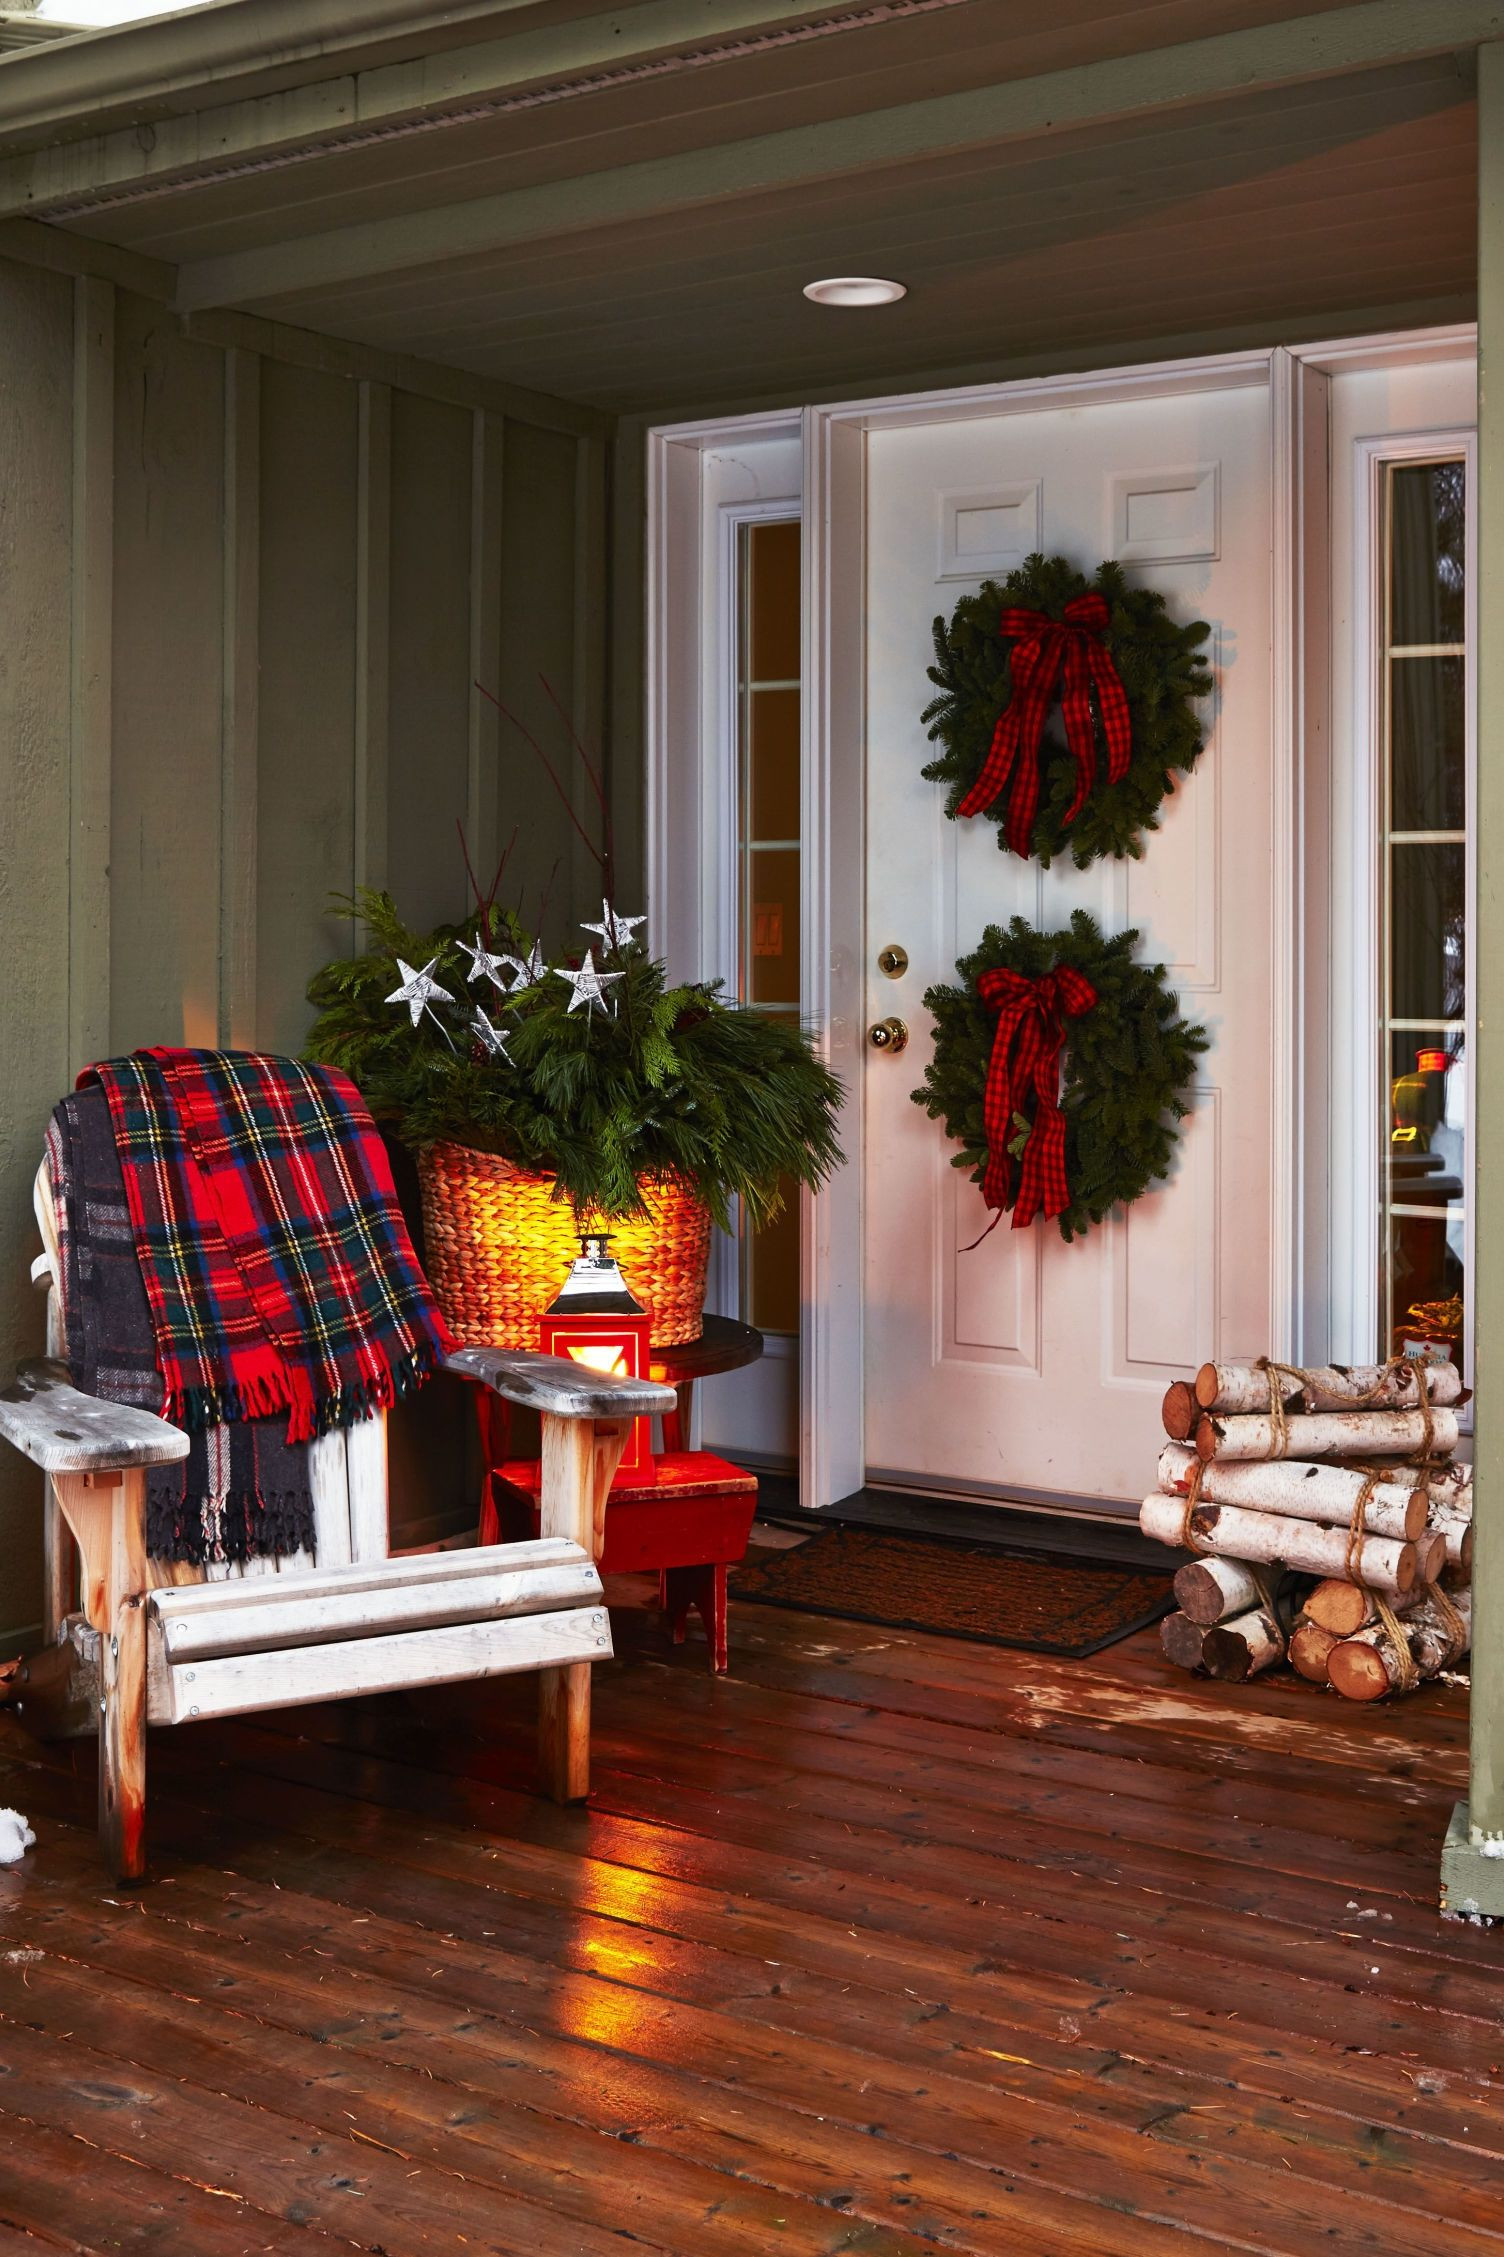 Backyard Christmas Decorations  30 Best Outdoor Christmas Decorations Ideas